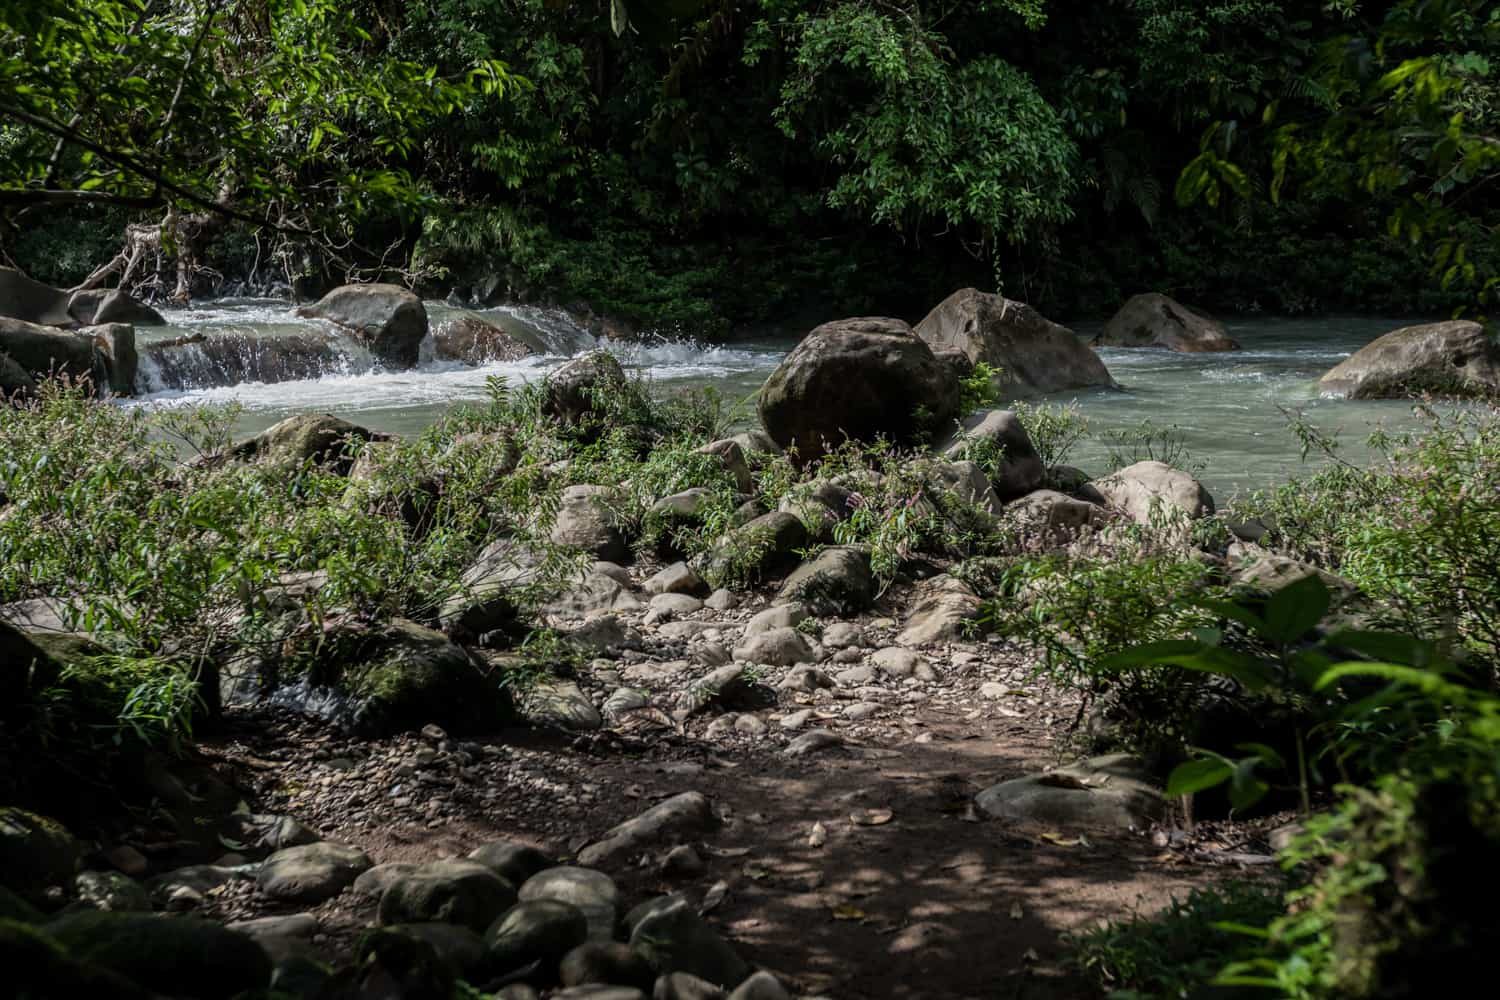 Great place by river for intimate wedding in Costa Rica at Rio Celeste Hideaway Hotel.